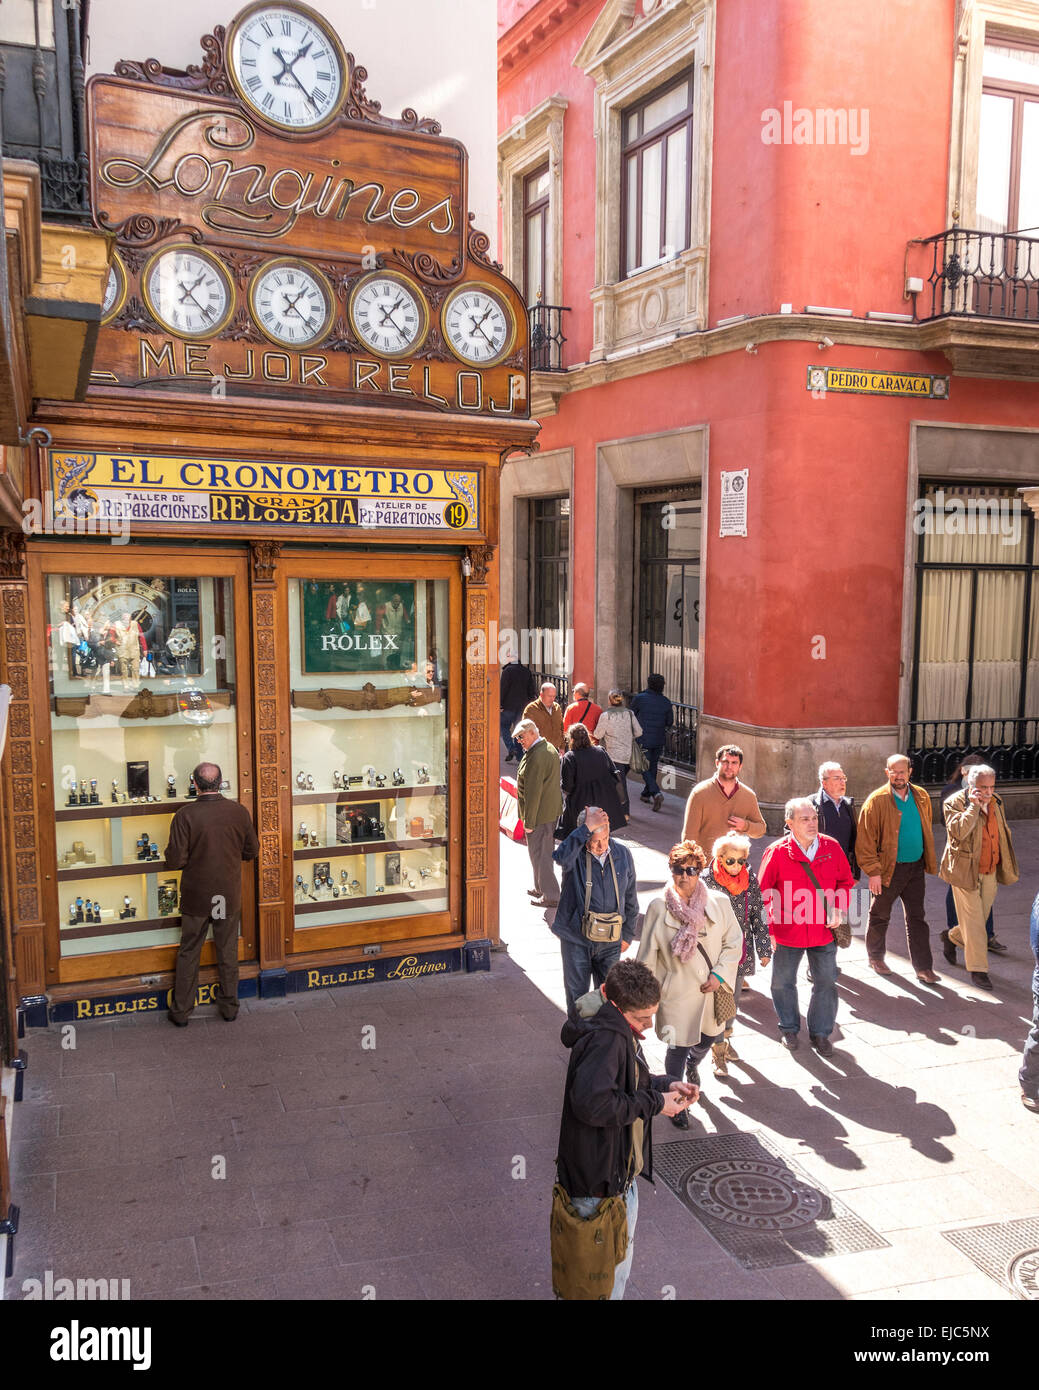 Calle Sierpes main shopping street in Seville Spain. Famous shop display facade of Longines watches, chronometers - Stock Image